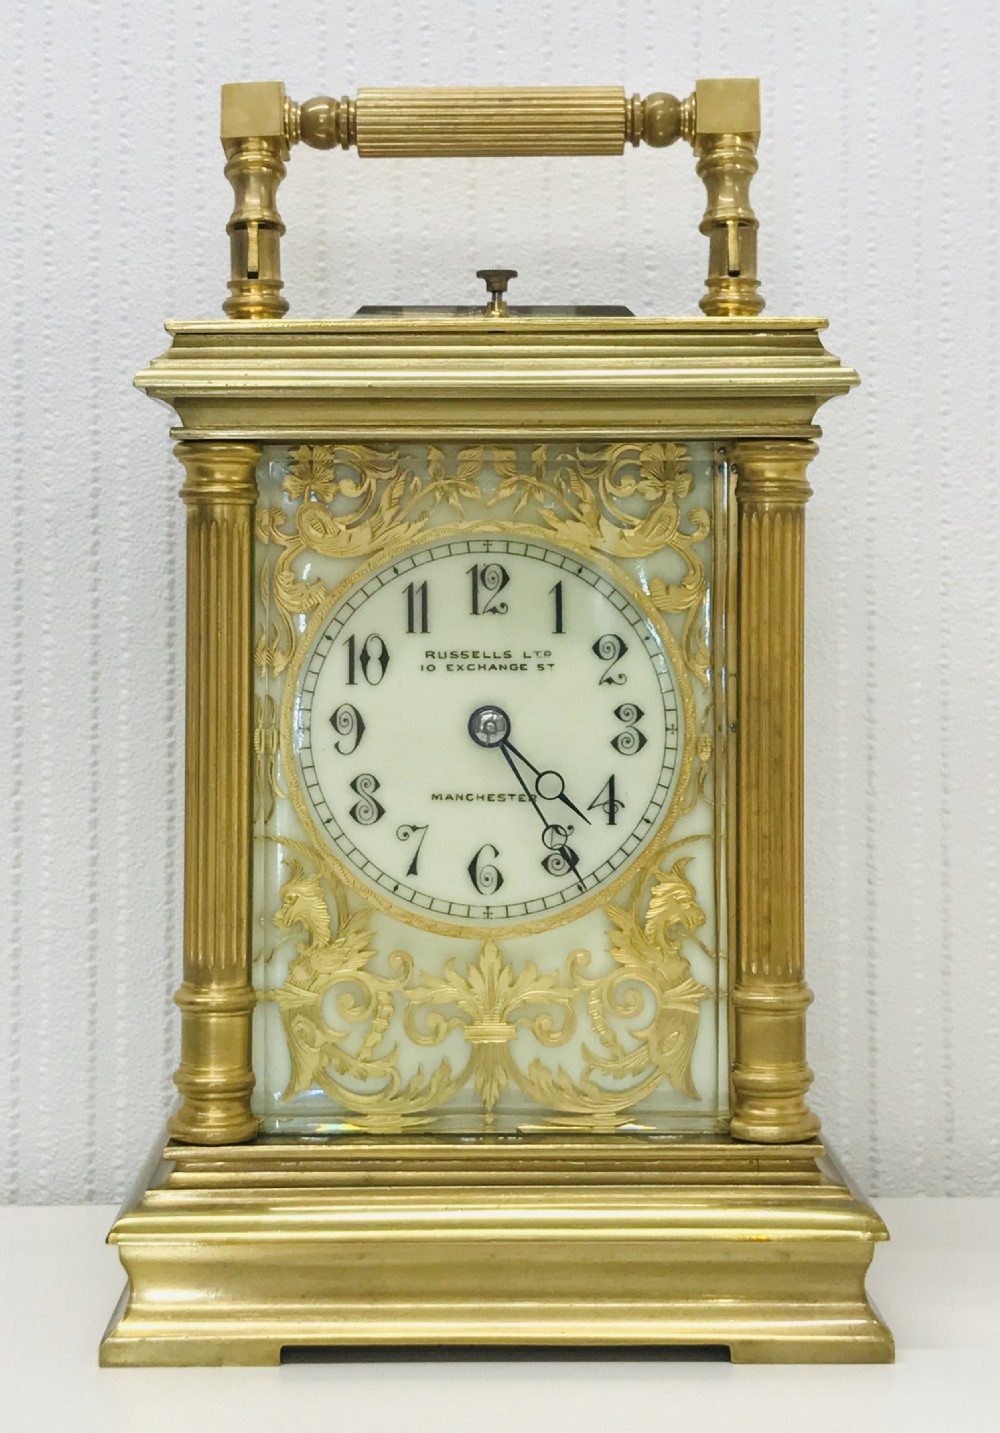 8 day engraved carriage clock